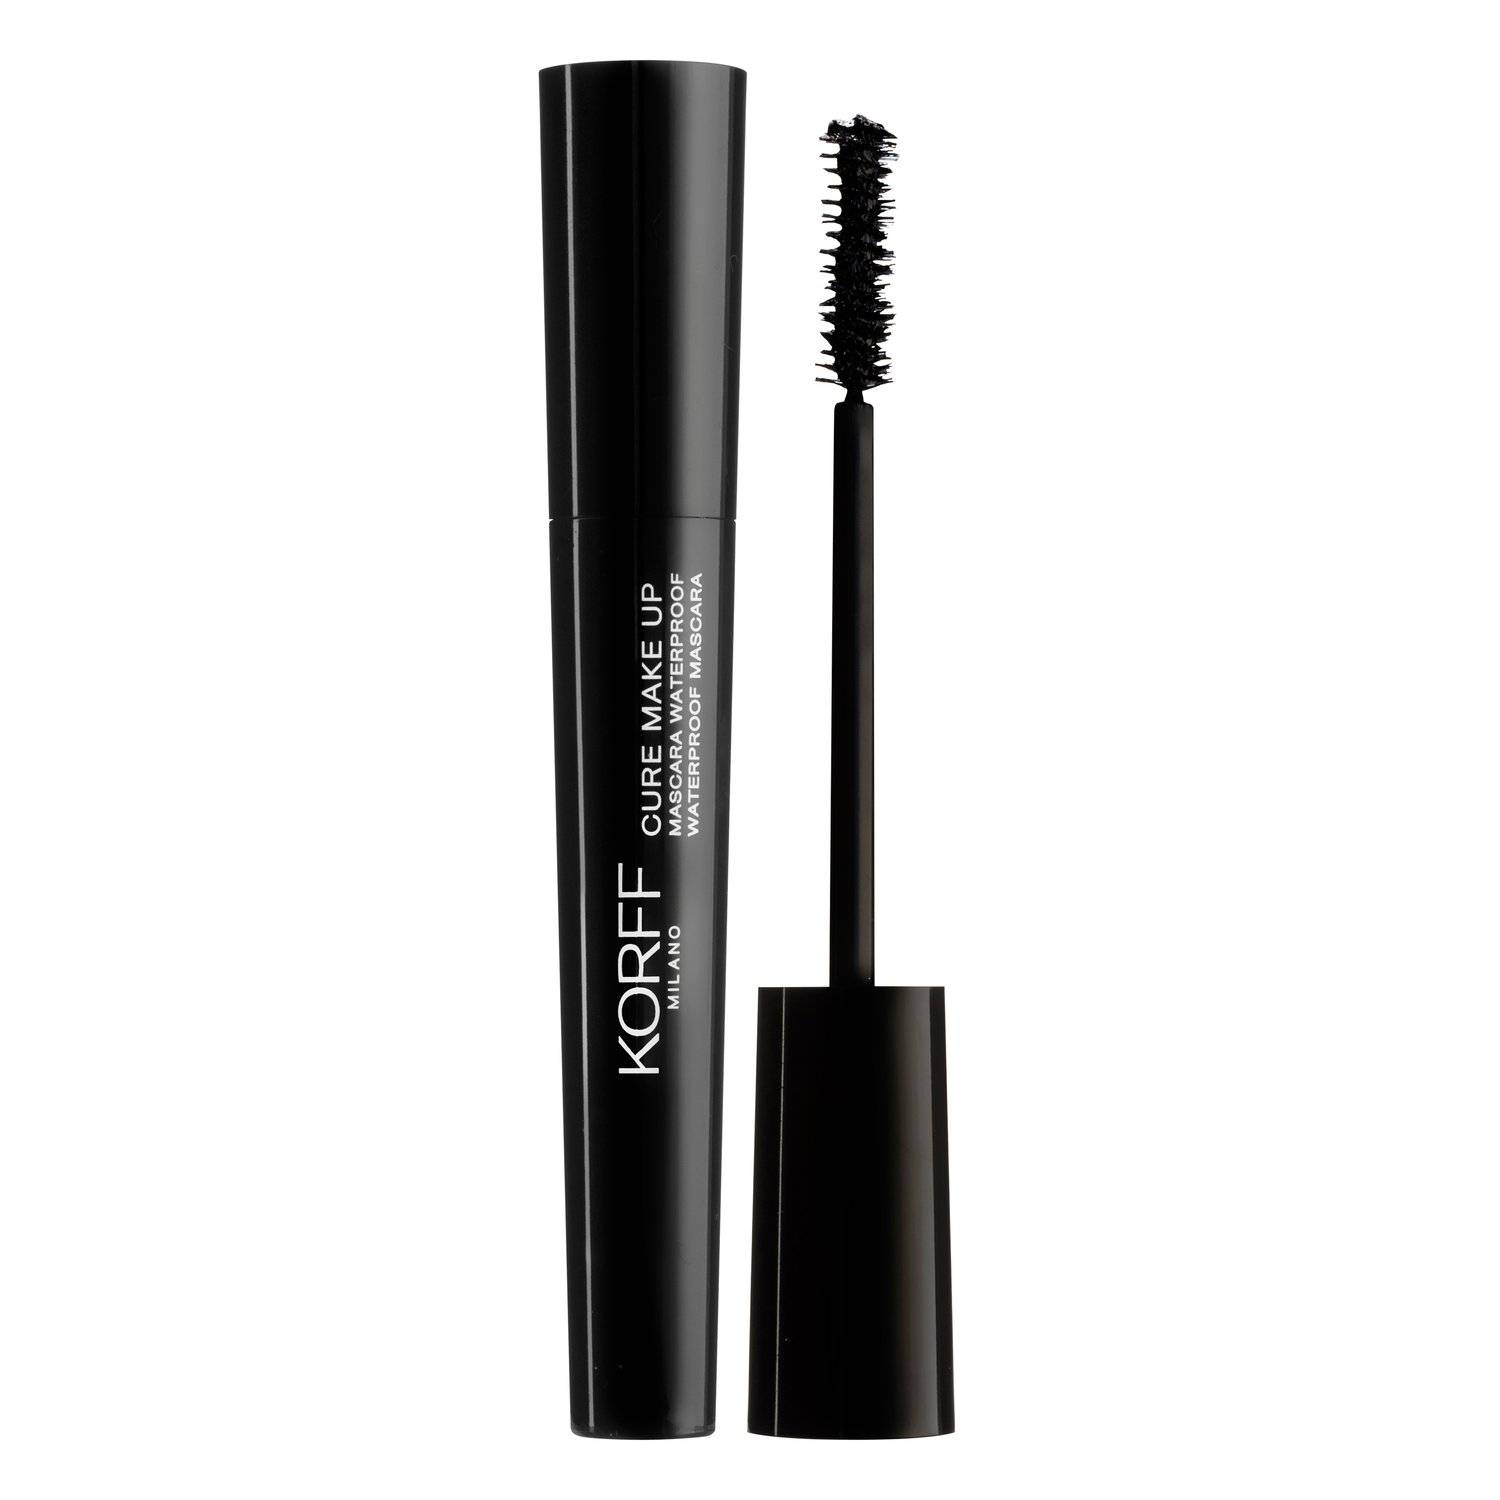 KORFF (DIV. IST. GANASSINI) Korff Oceanic Waterproof Volume Mascara Noir 9ml